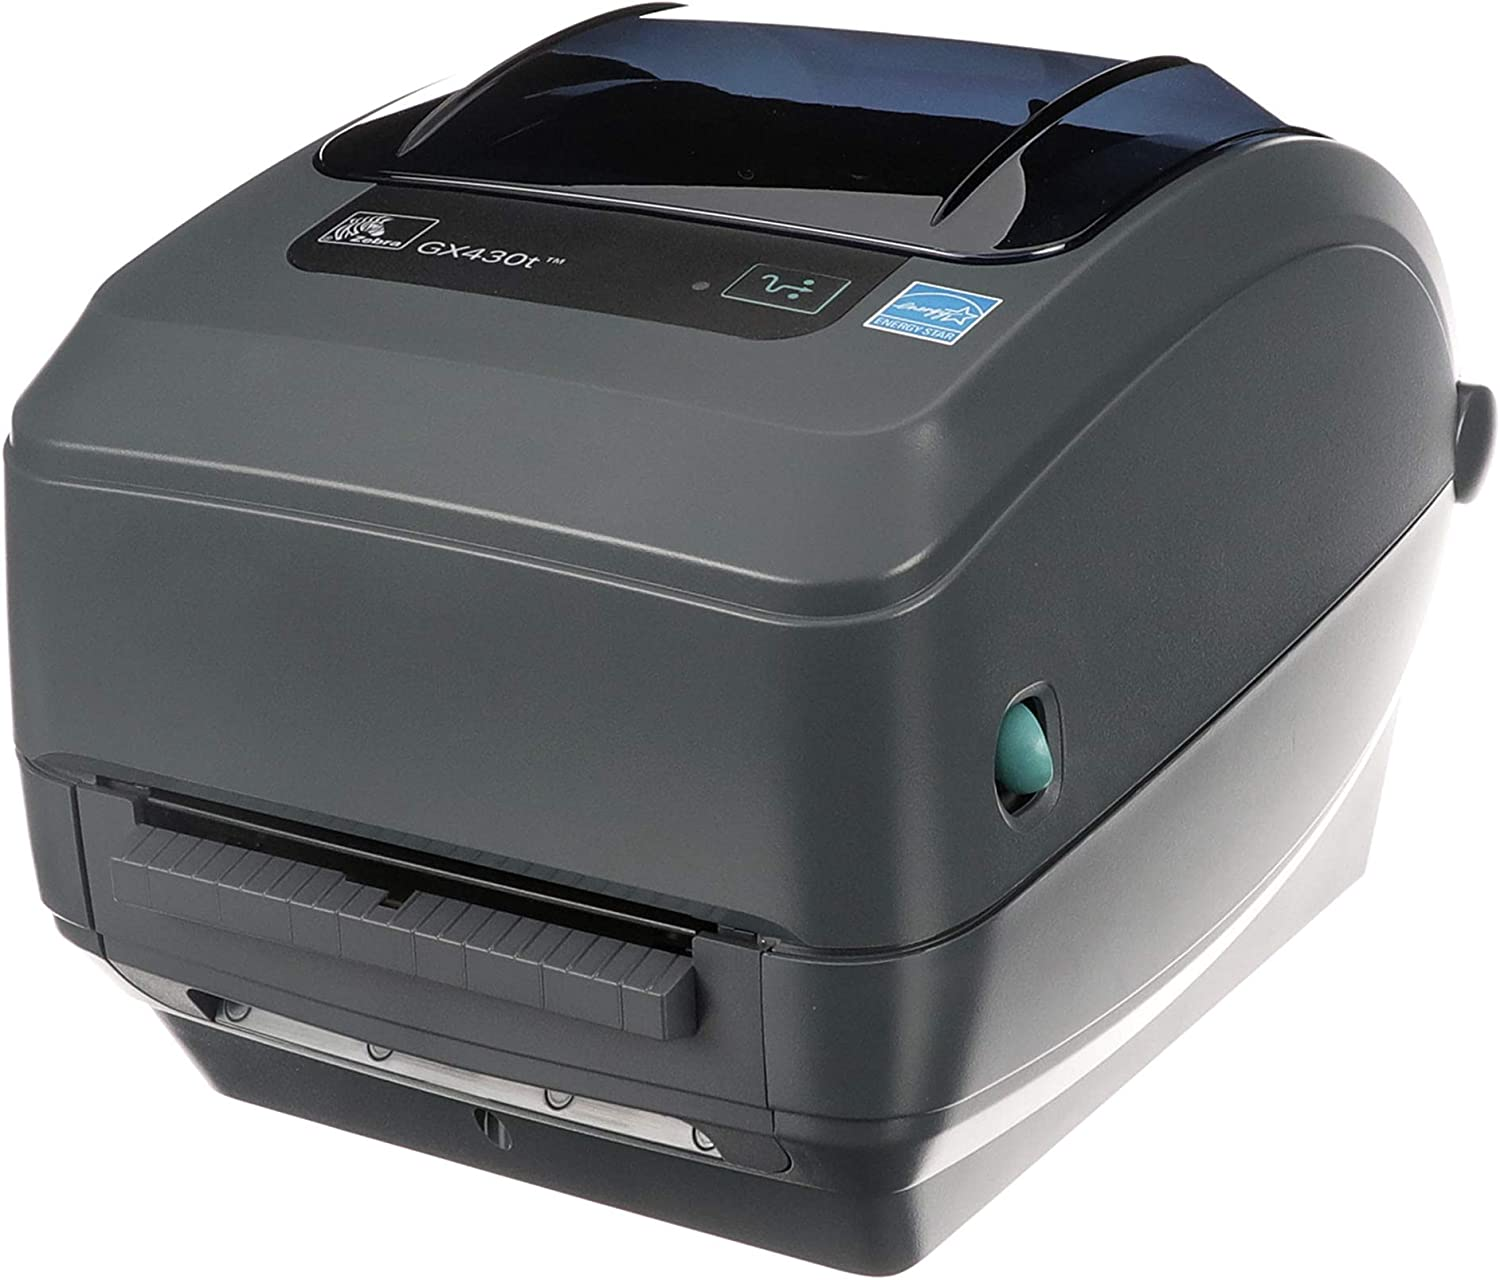 Zebra GX430t Thermal Transfer Desktop Printer Print Width of 4 in USB Serial Parallel and Ethernet Connectivity Includes Peeler - GX43-102411-000